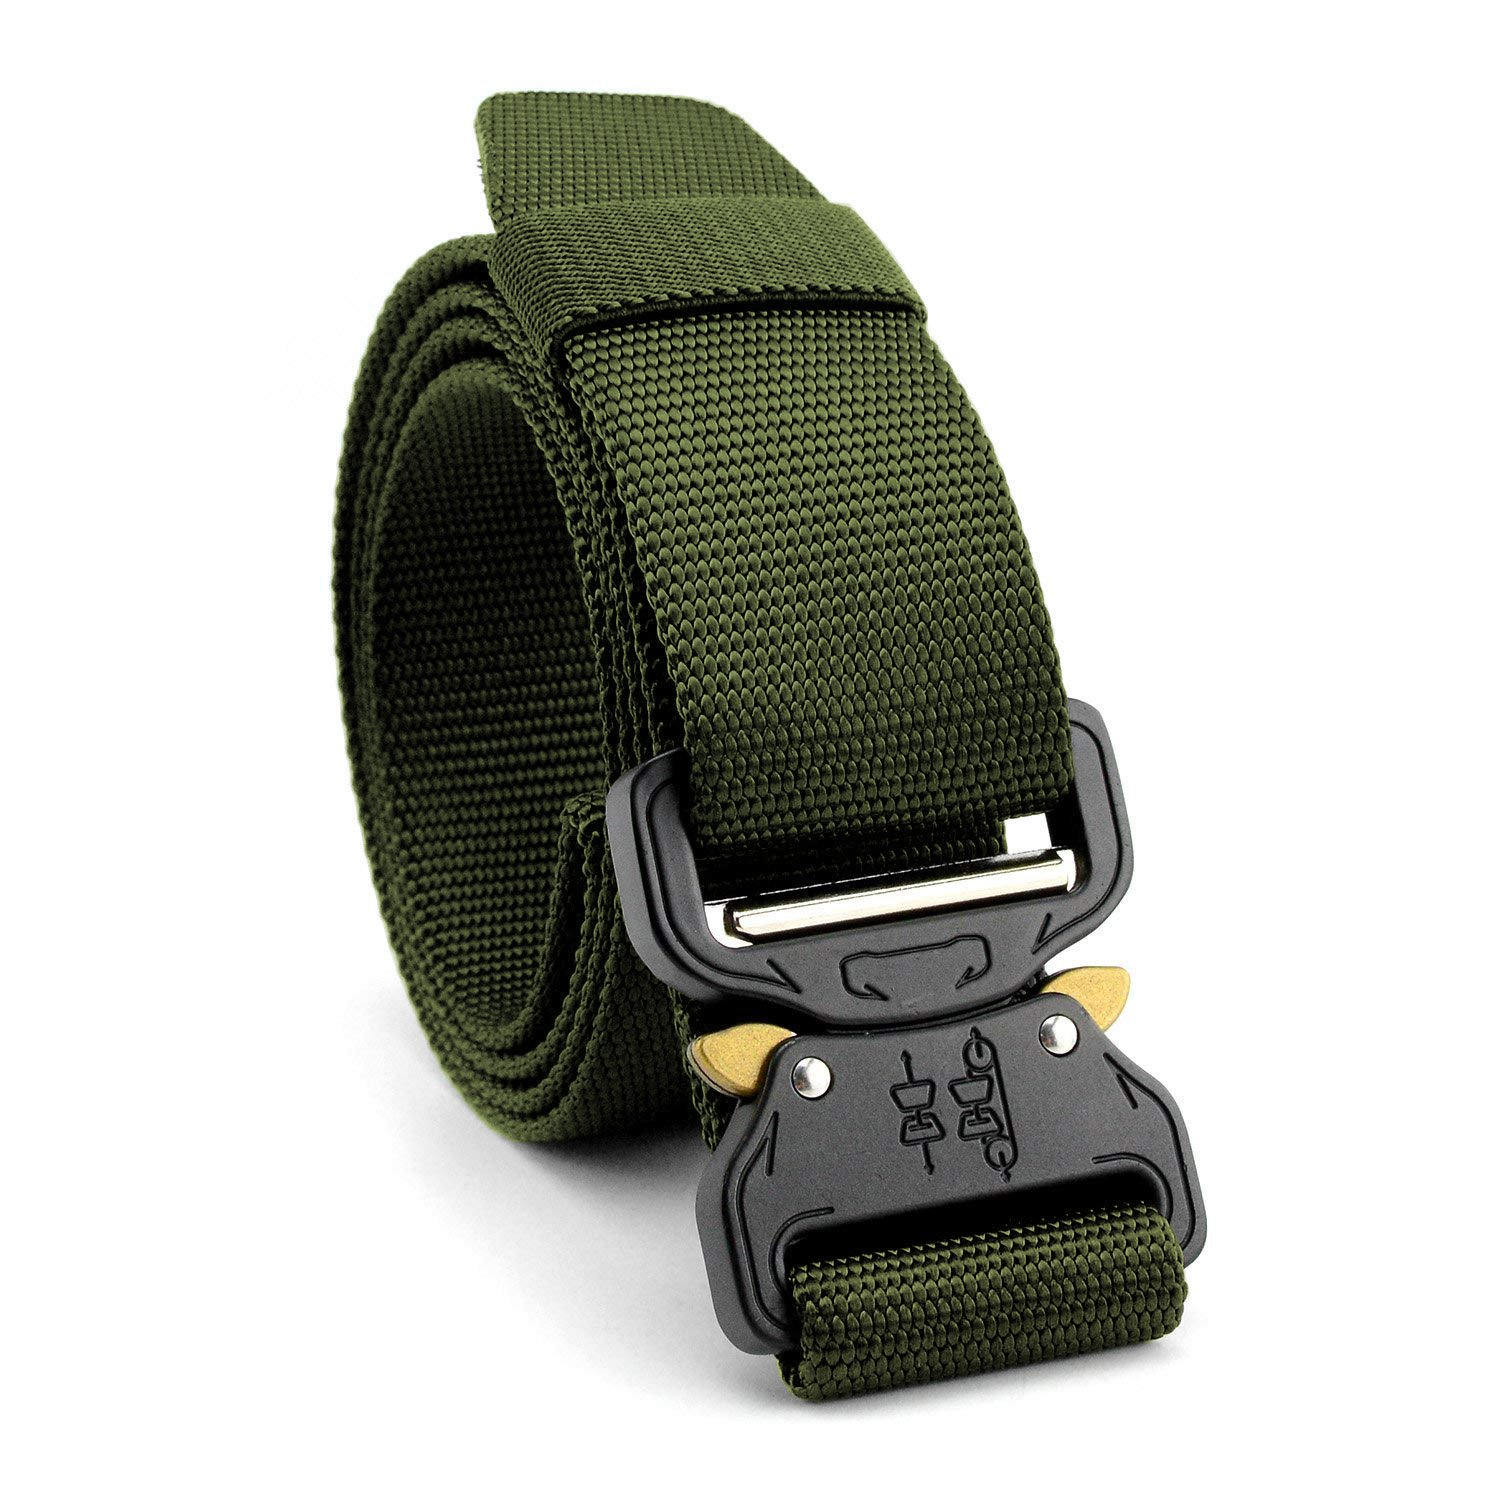 MARCHONE Mens Tactical Hunting Belts for Training, Hunting Safety, Casual Wearing Webbing Military Nylon Belt with Adjustable Metal Buckle